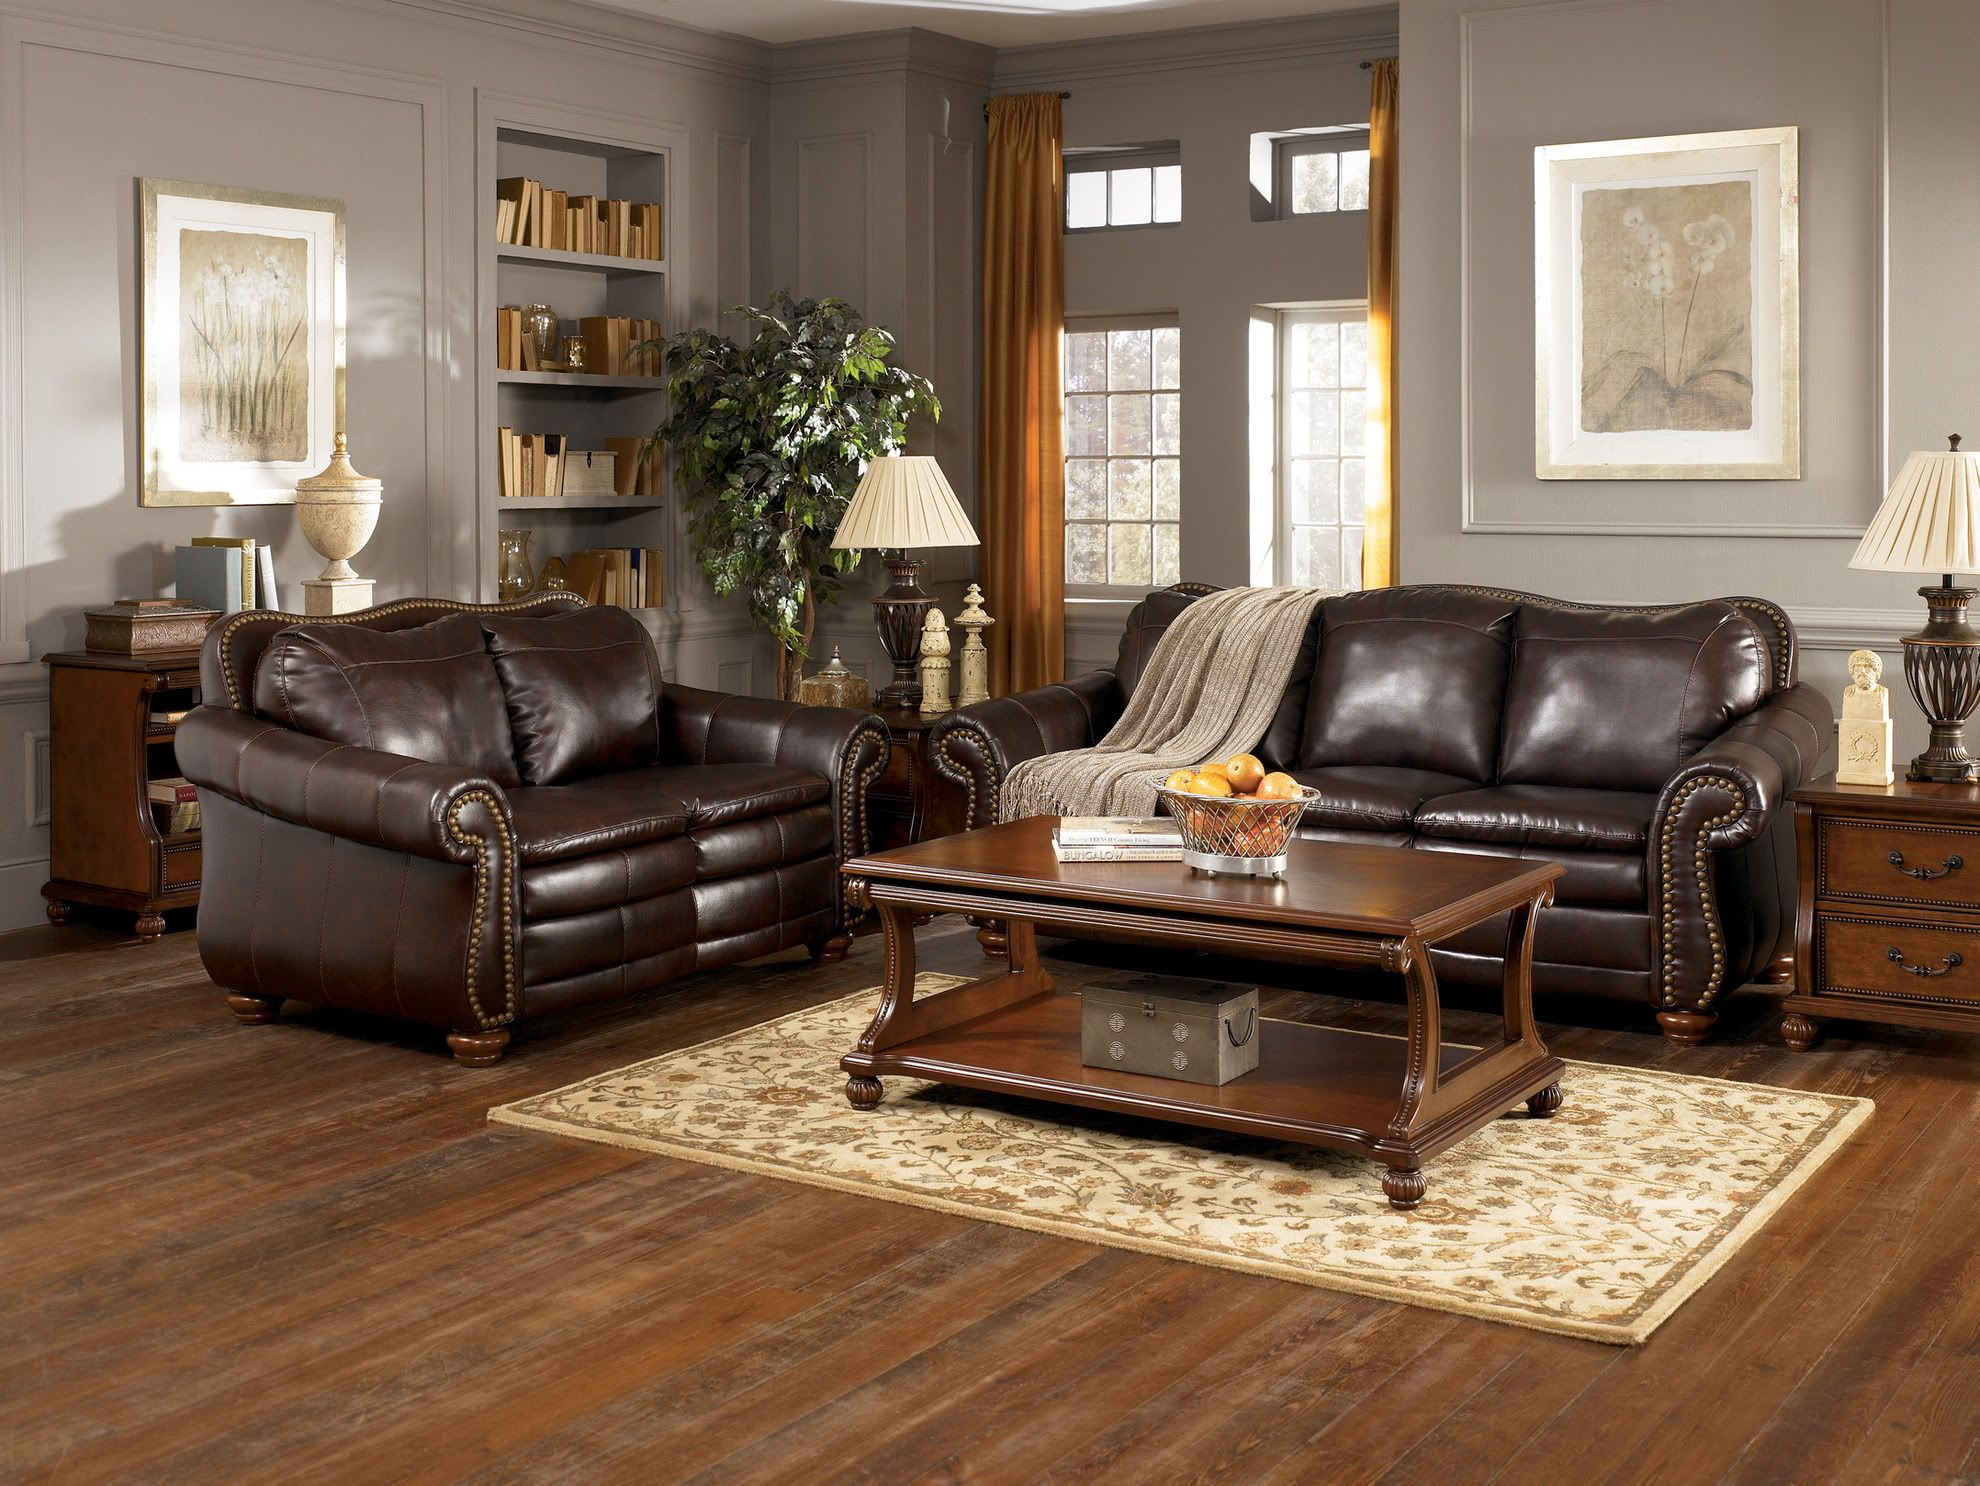 Image of: Grey and Brown Living Room Elegant